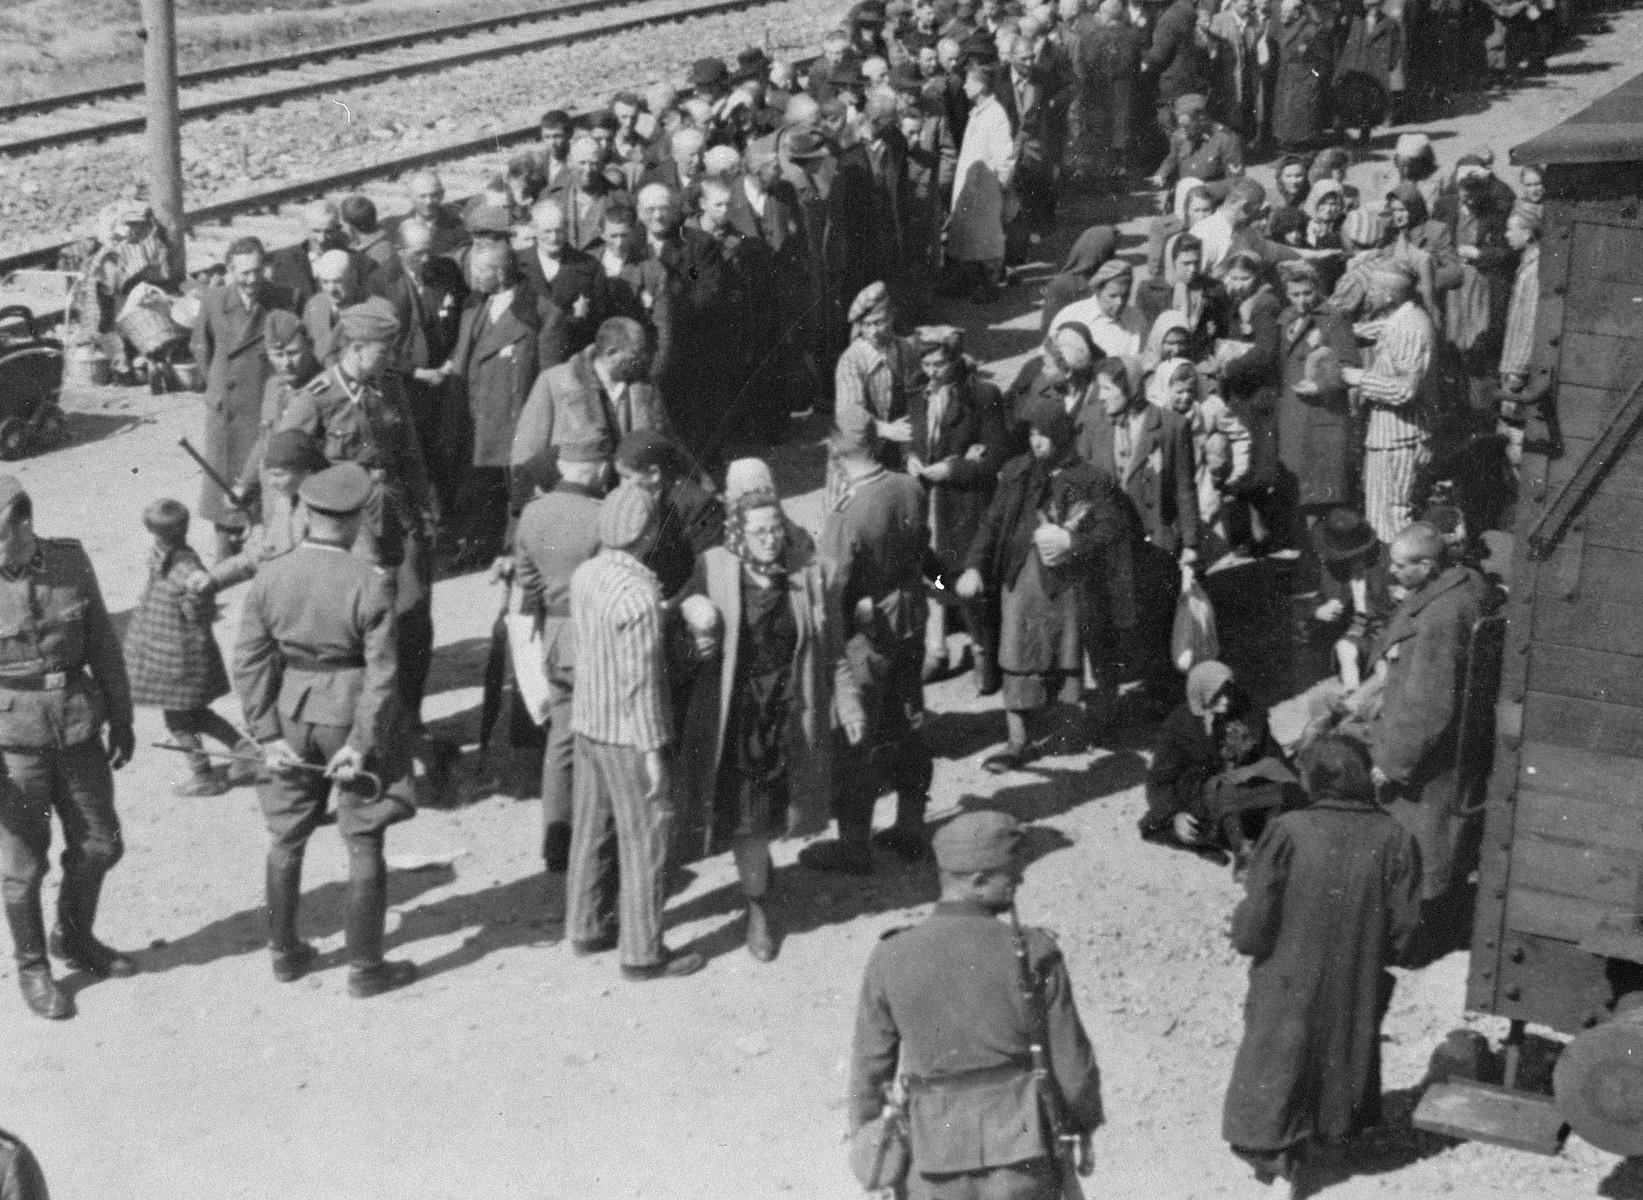 Jews from Subcarpathian Rus undergo a selection on the ramp at Auschwitz-Birkenau.  Pictured in front holding a riding crop is either SS Unterscharfuehrer Wilhelm Emmerich or SS Haupsturmfuehrer Georg Hoecker.  Also pictured are members of the Kanada kommando,  Hans Schorr, Norbert Lopper and Heini Preiss.  Gyorgy Havas is standing in the center in a white coat.